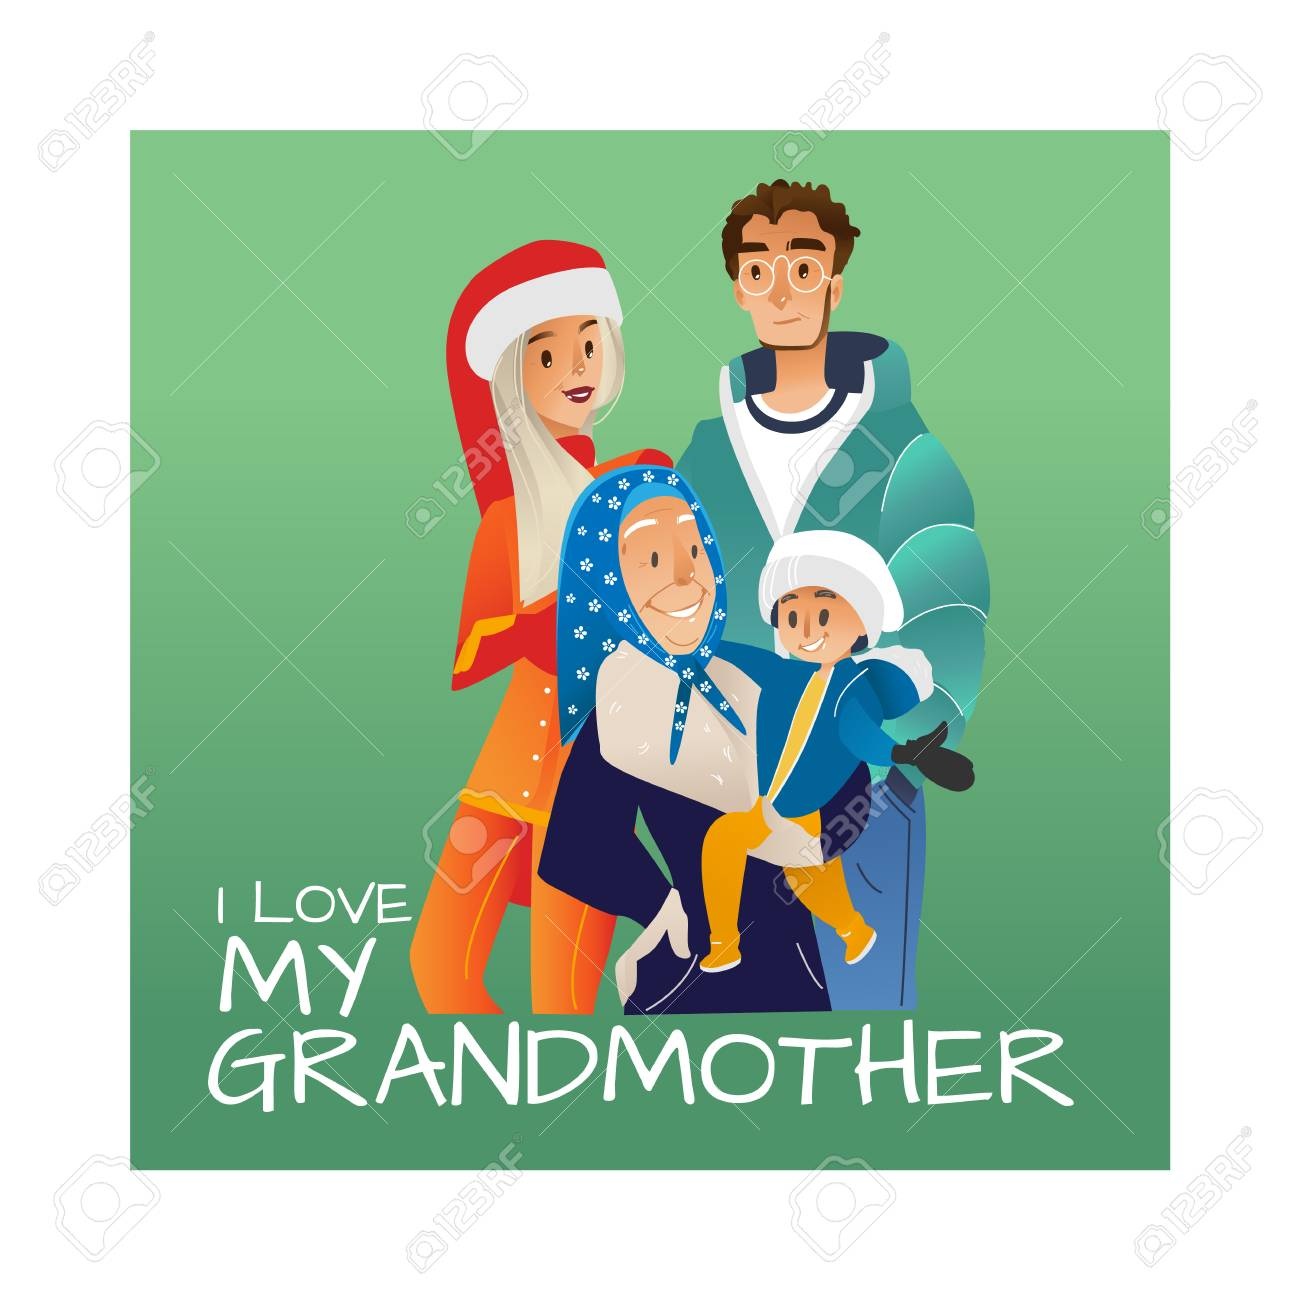 Vector I Love My Grandmother Poster With Cartoon Family Hugging Royalty Free Cliparts Vectors And Stock Illustration Image 128169592